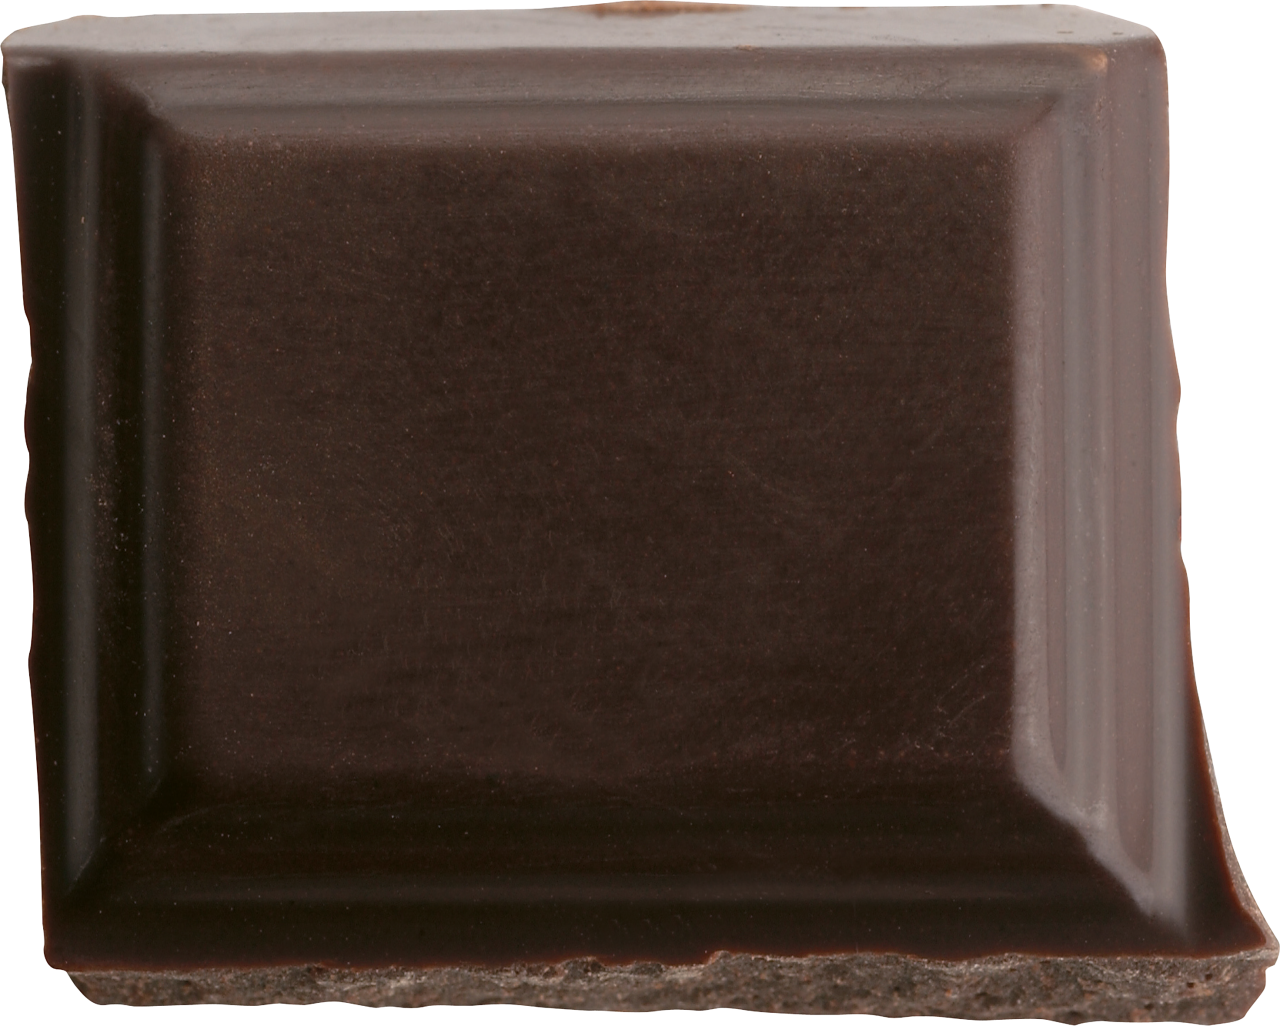 One Choclate Piece PNG Image